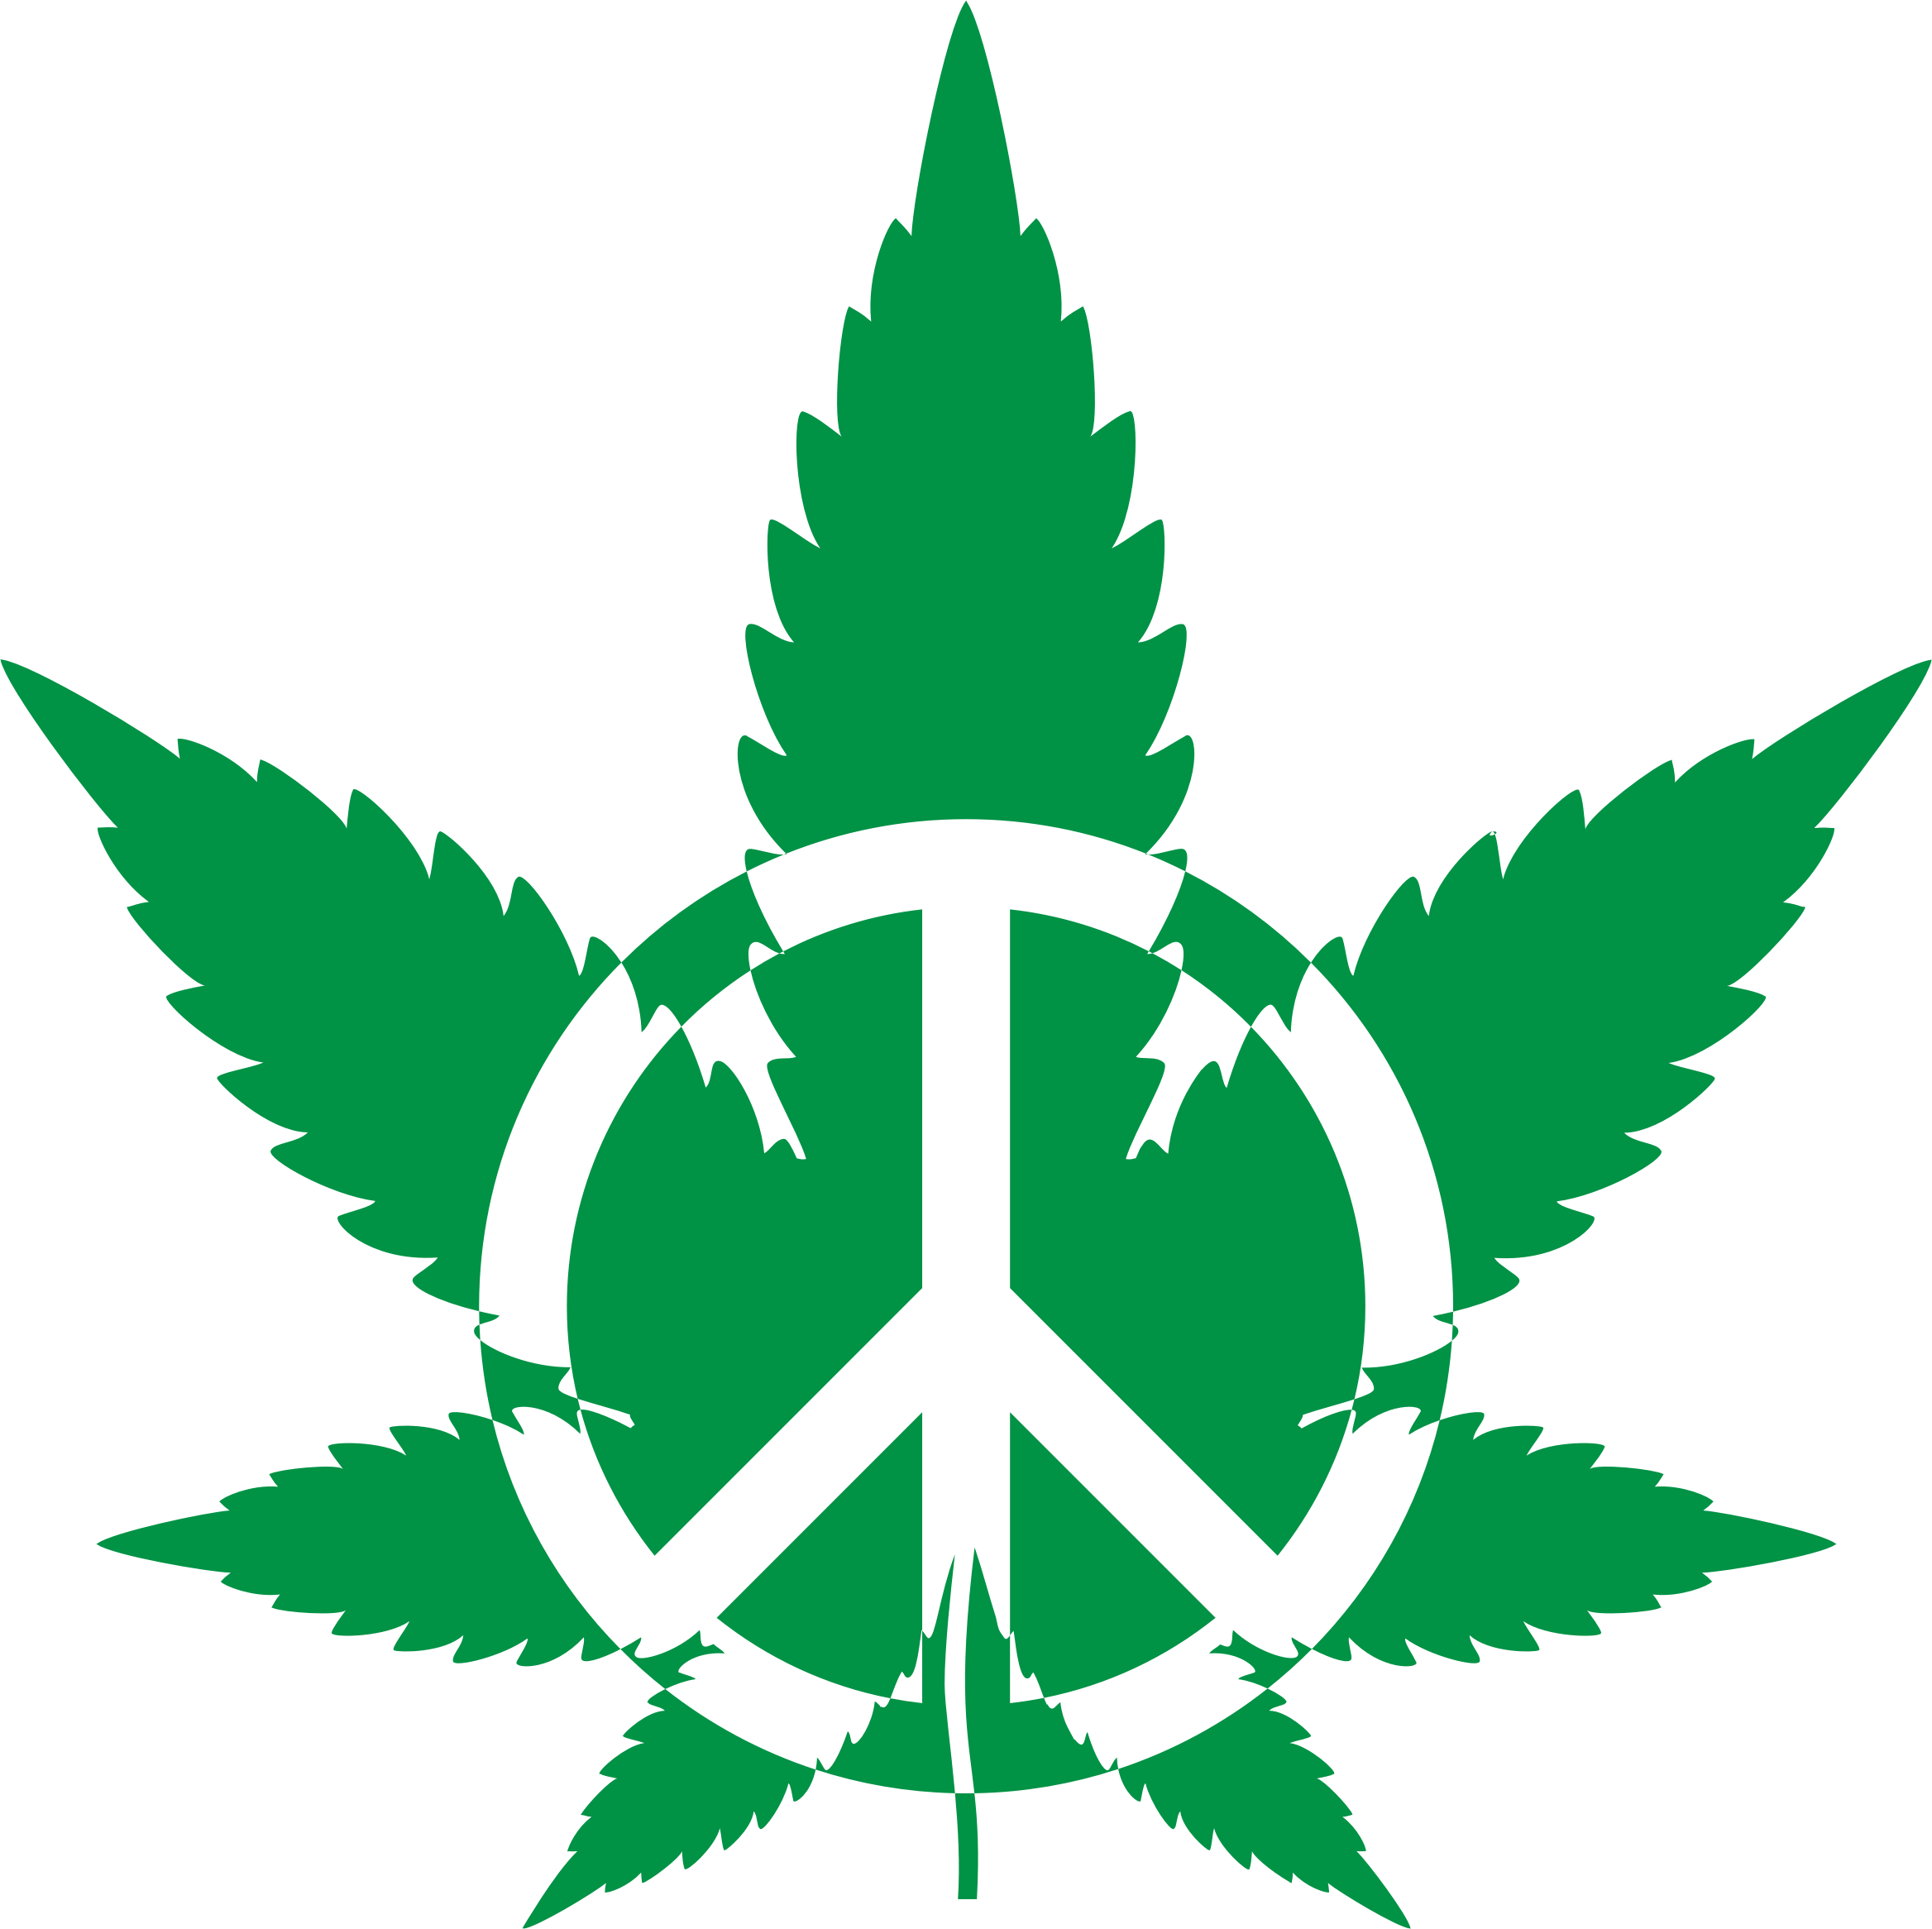 Weed cliparts graphic 14 cliparts for free. Download Weed clipart border and use ... graphic